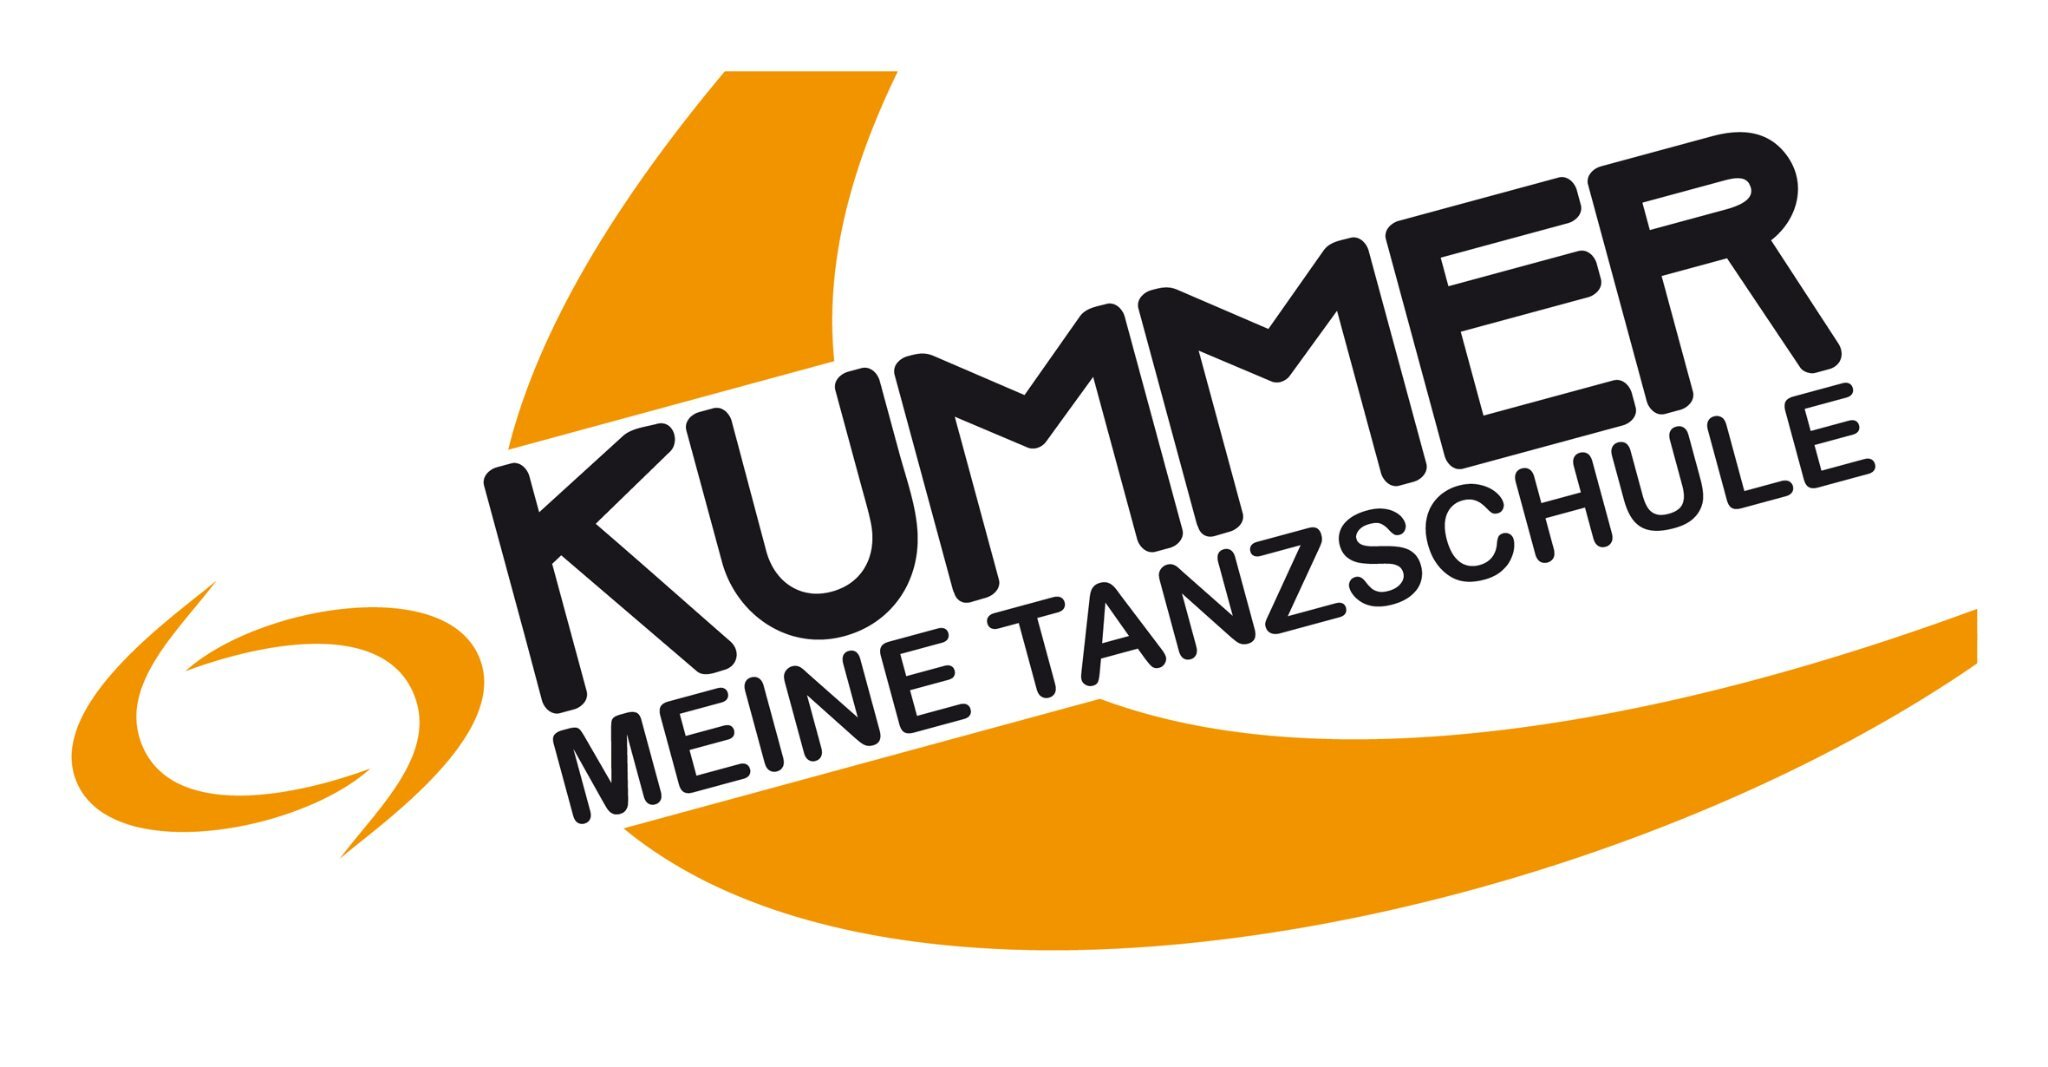 Single tanzkurs gleisdorf